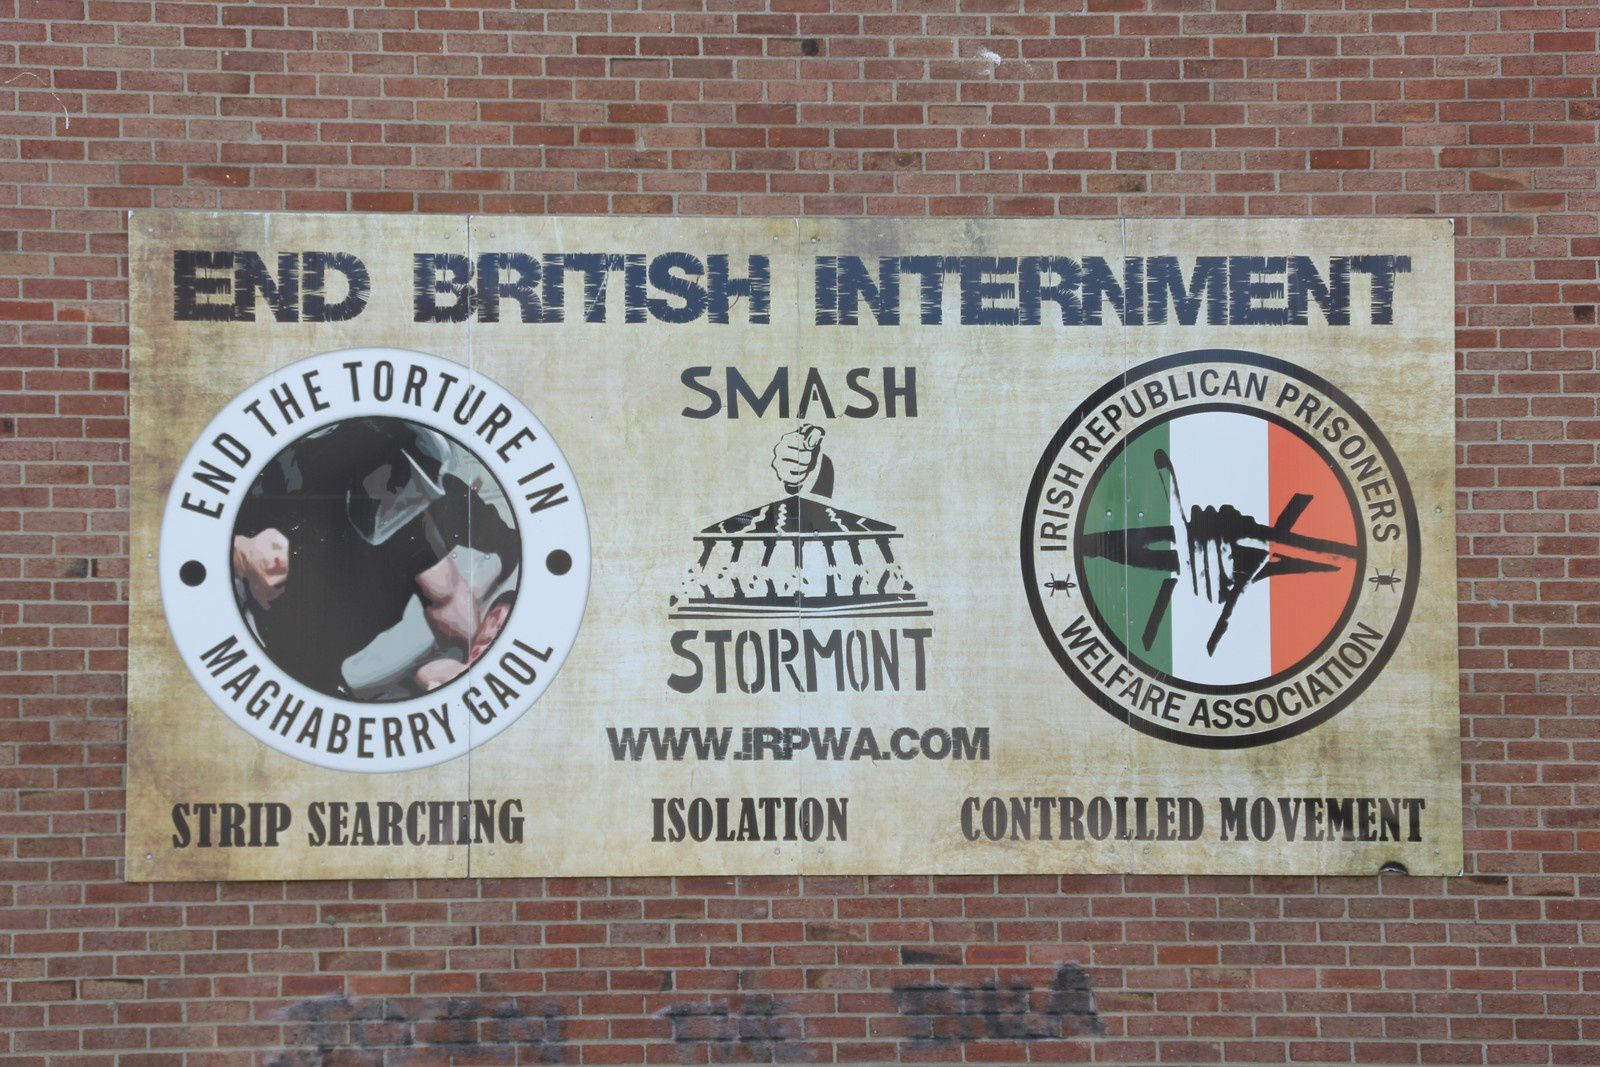 740) The Bogside, Derry